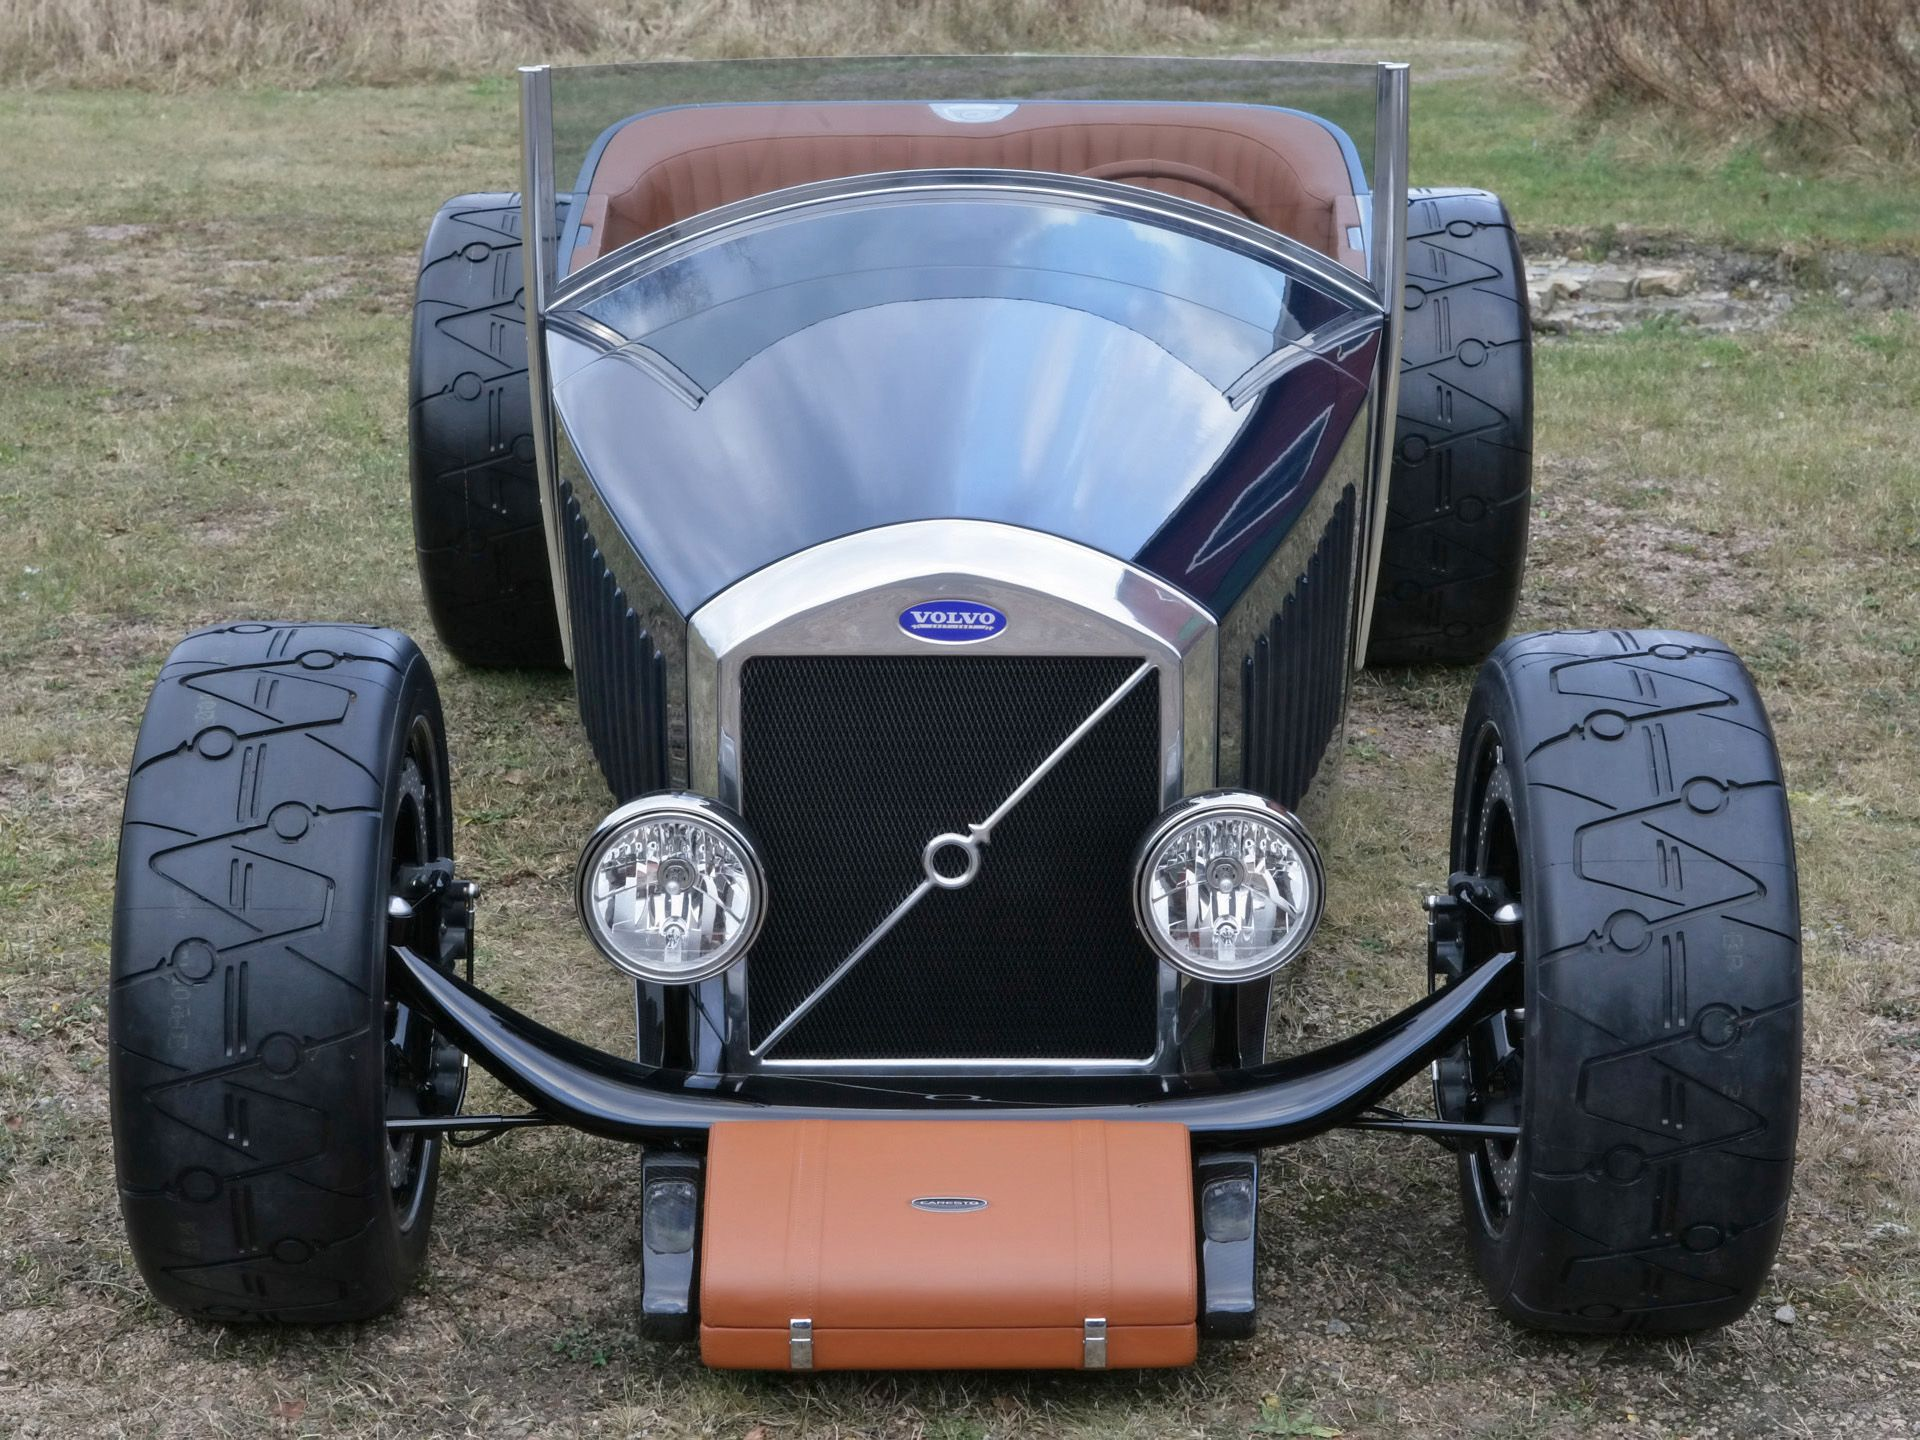 Volvo hot rod. Very, very cool   Volvo   Pinterest   Volvo, Cars and ...